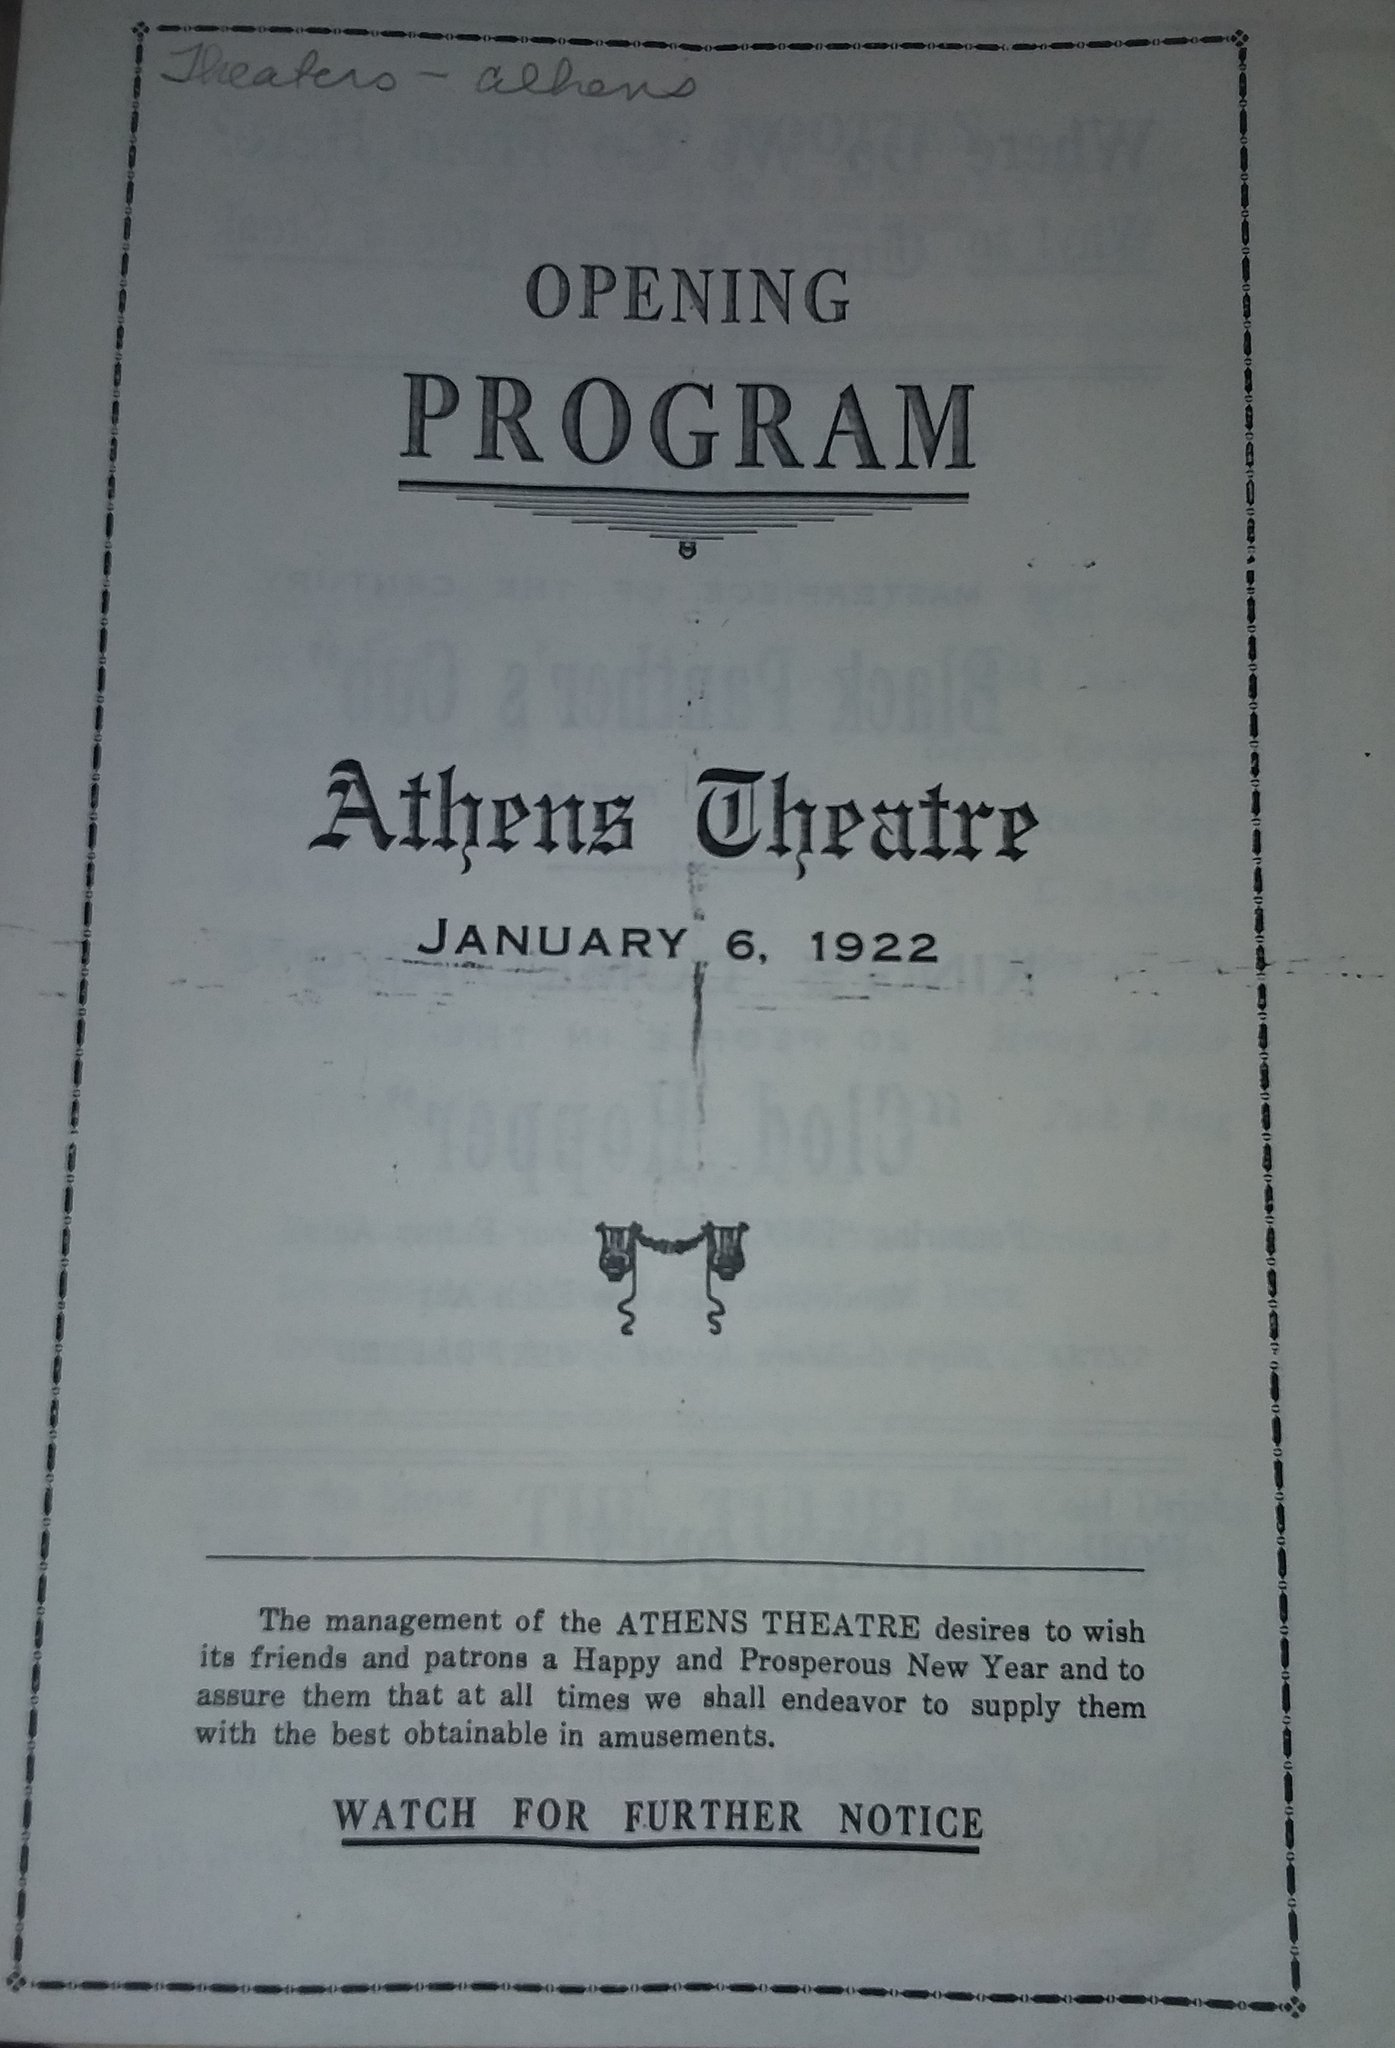 Opening Program 1922 (source: West Volusia Historical Society)